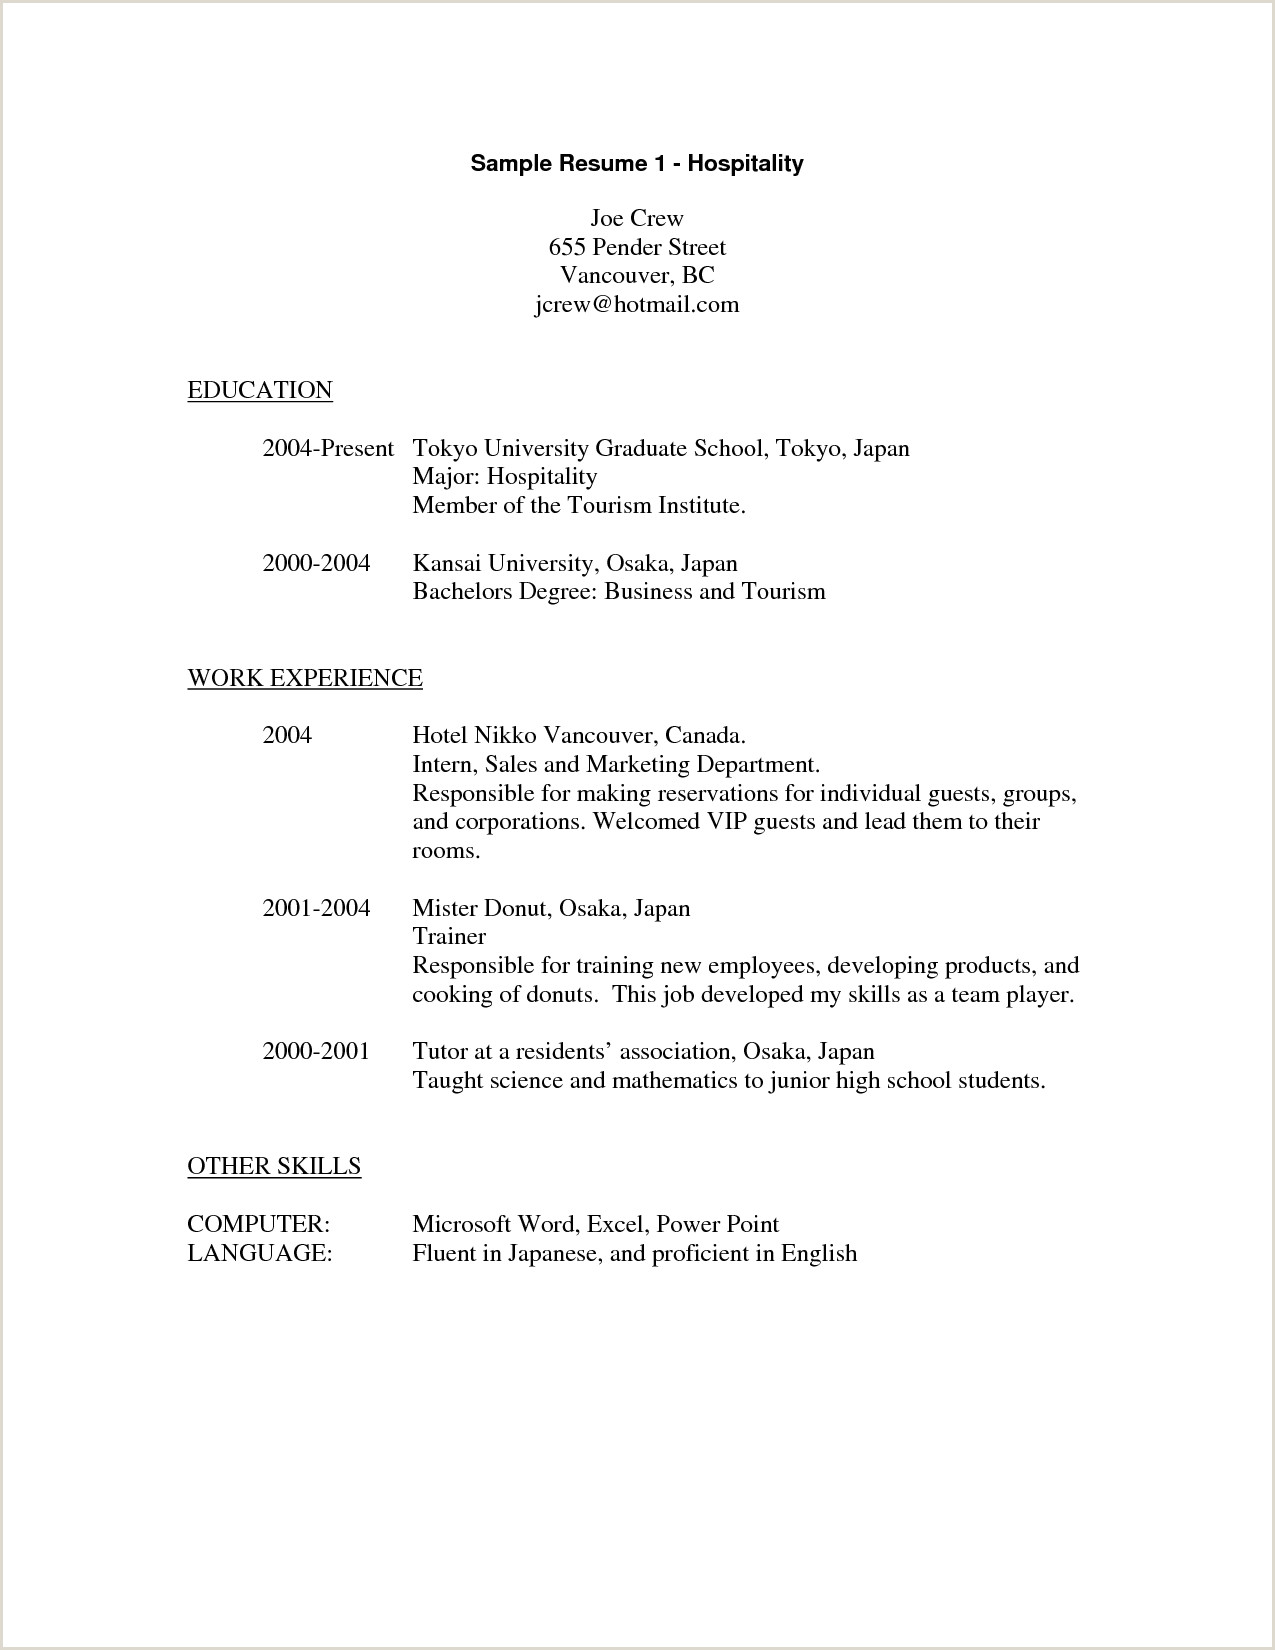 Resume format for Hotel Job Pdf Sample Resume for Hospitality Industry Jobs Van